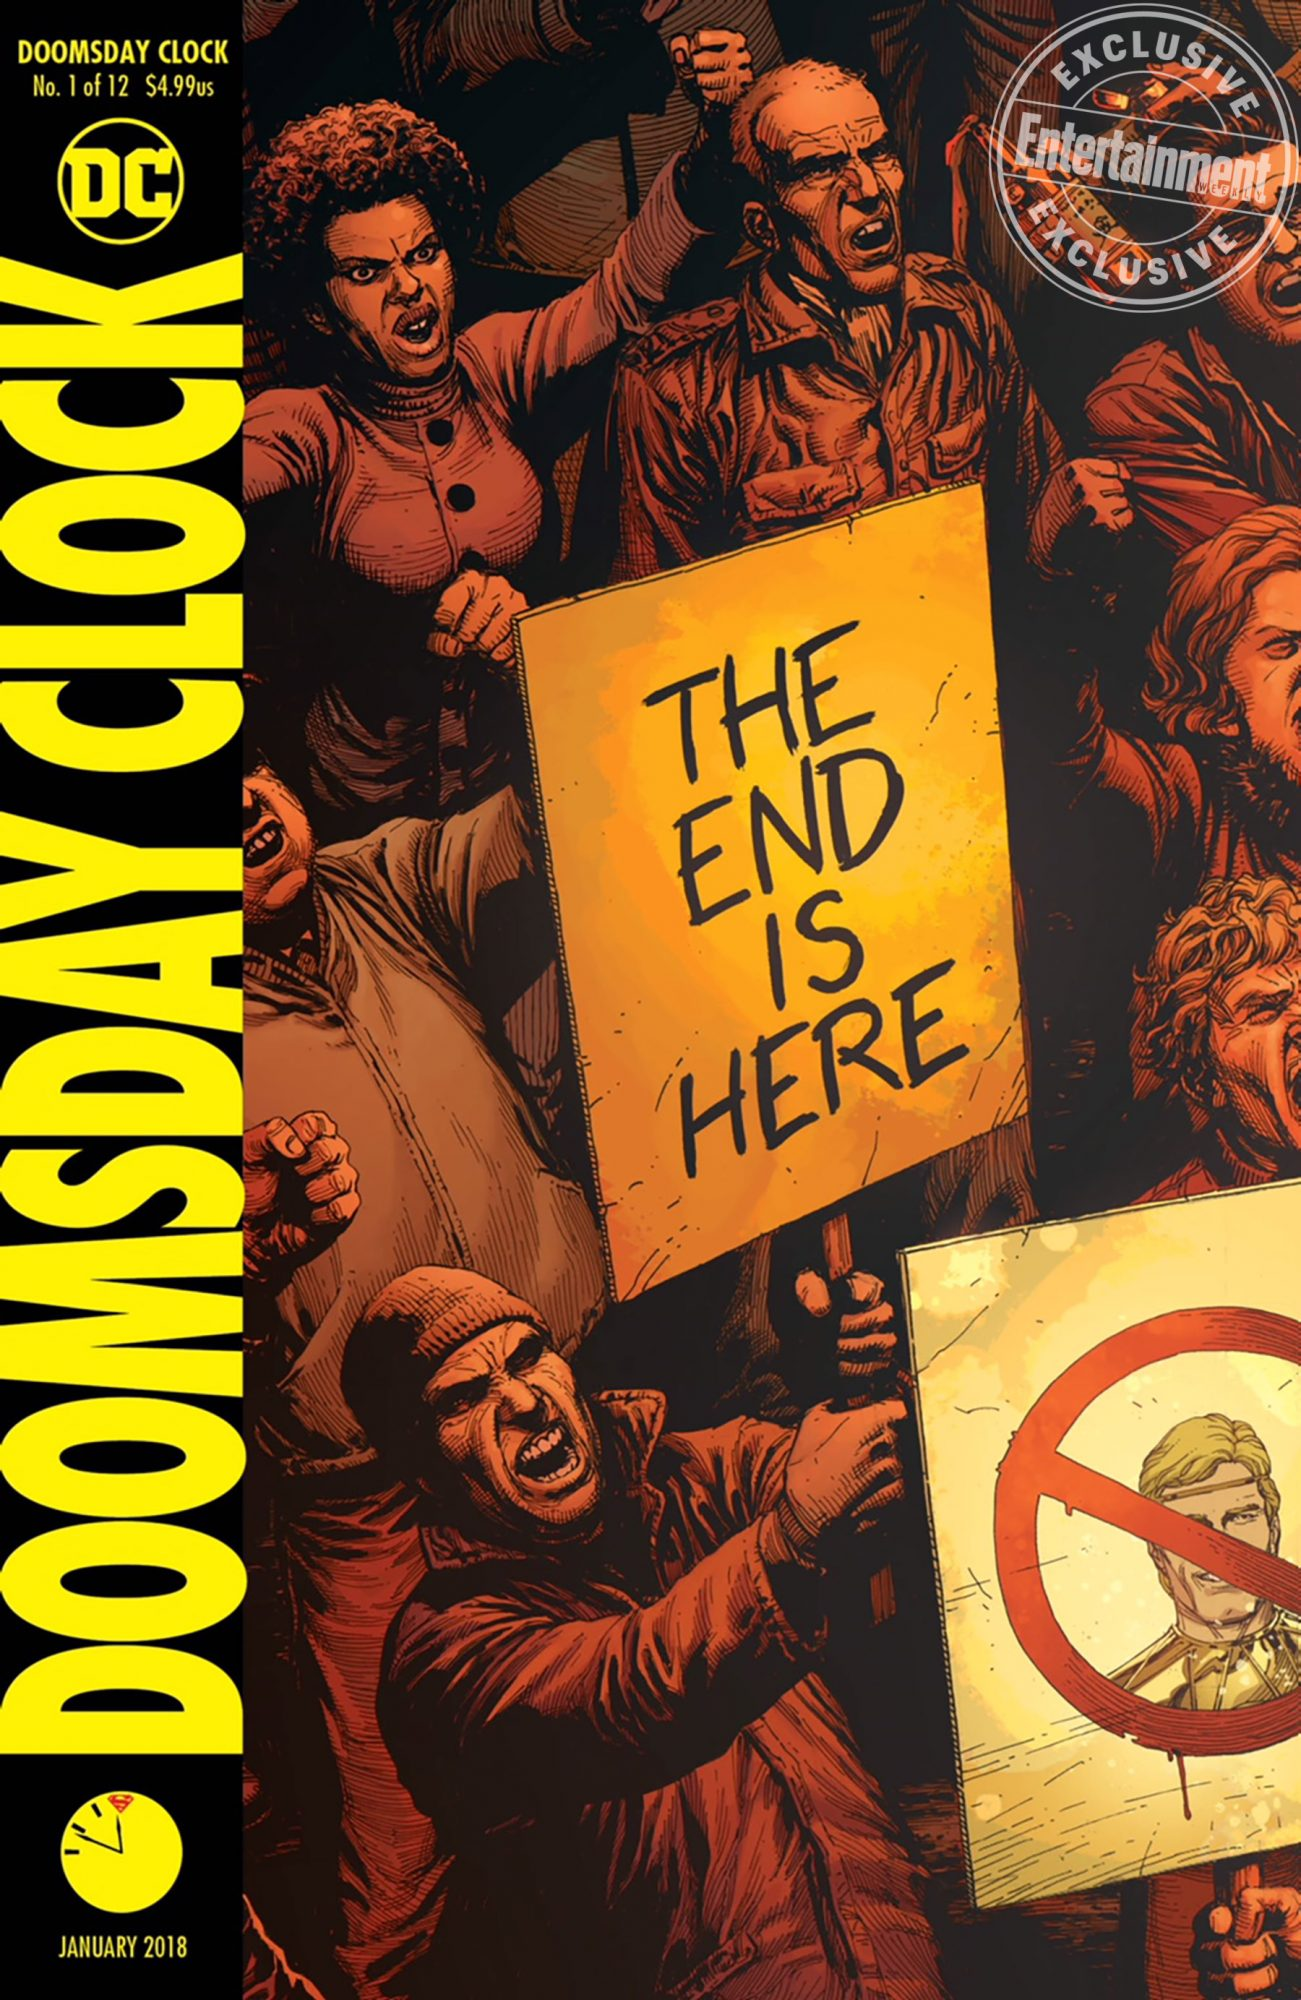 (WATERMARKED) Doomsday Clock